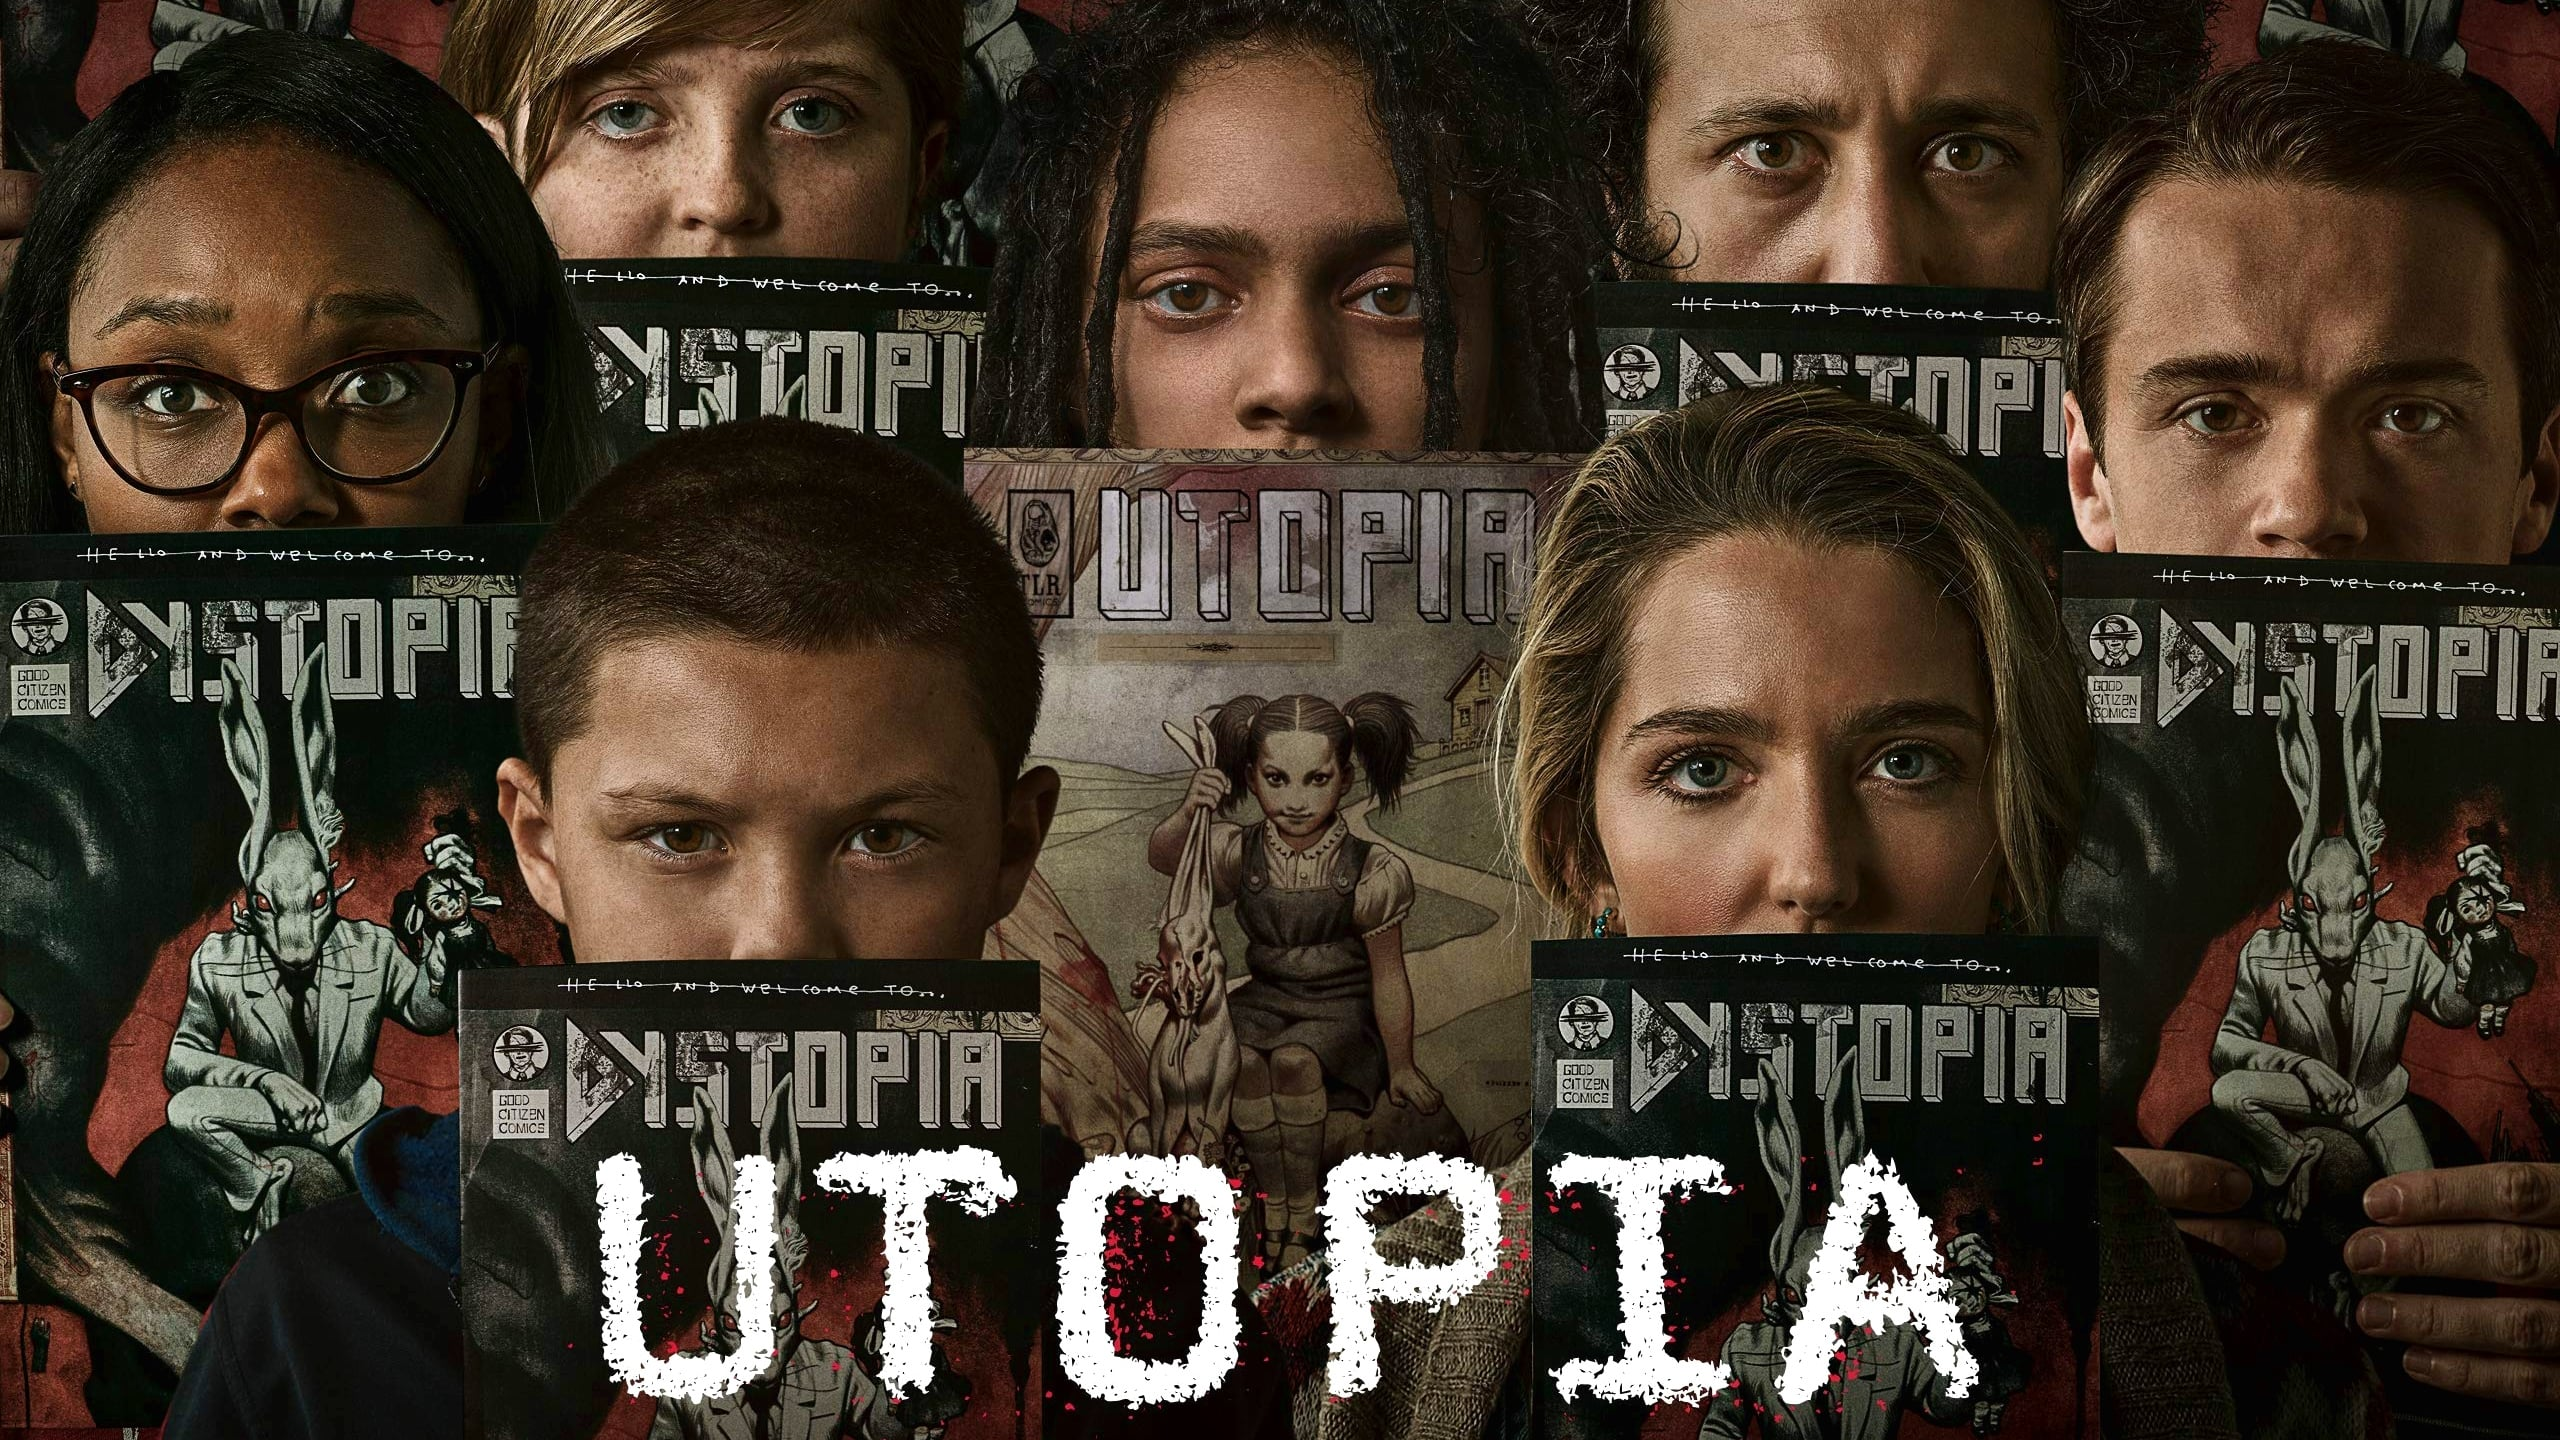 Utopia (2020) eind september in première bij Amazon